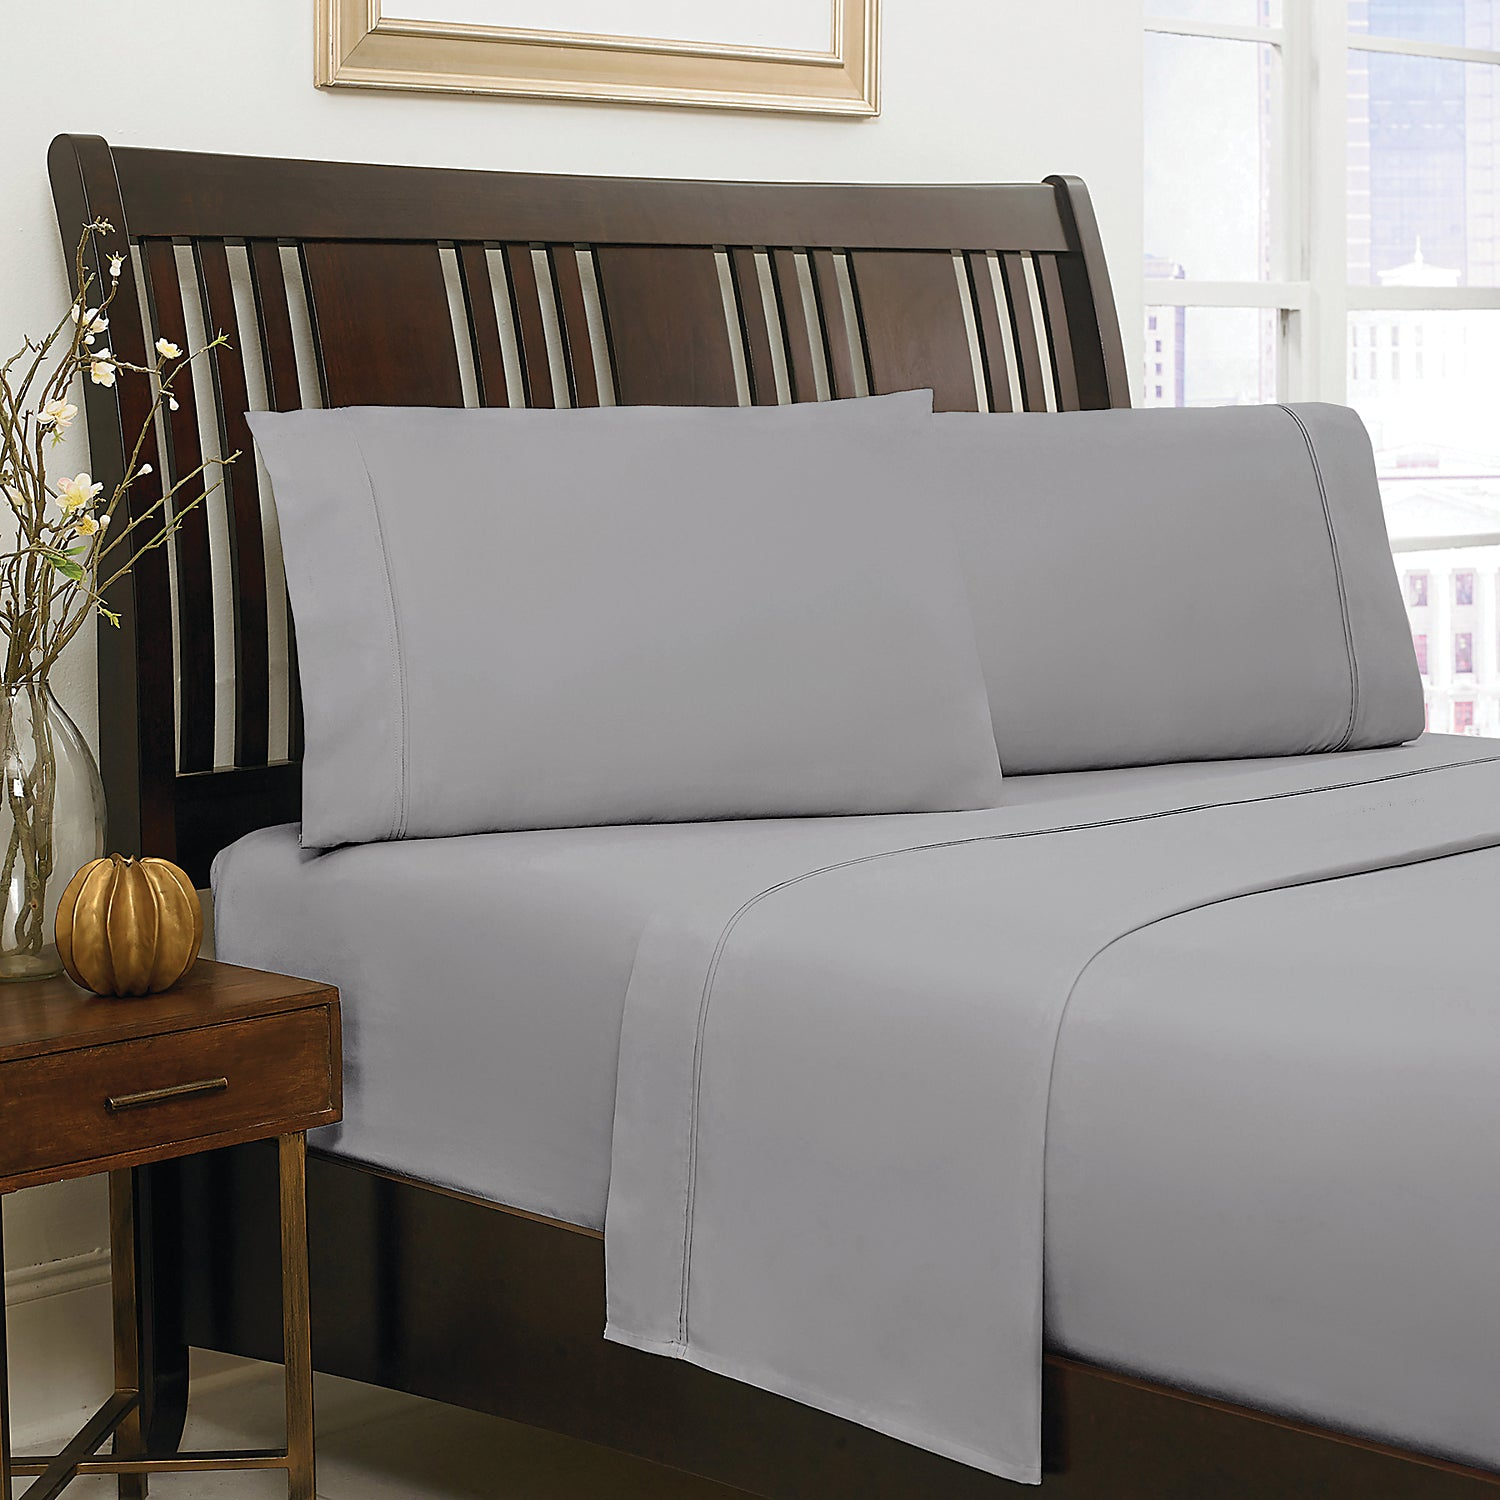 300 Thread Count Twin Sheet Set Grey The Brick